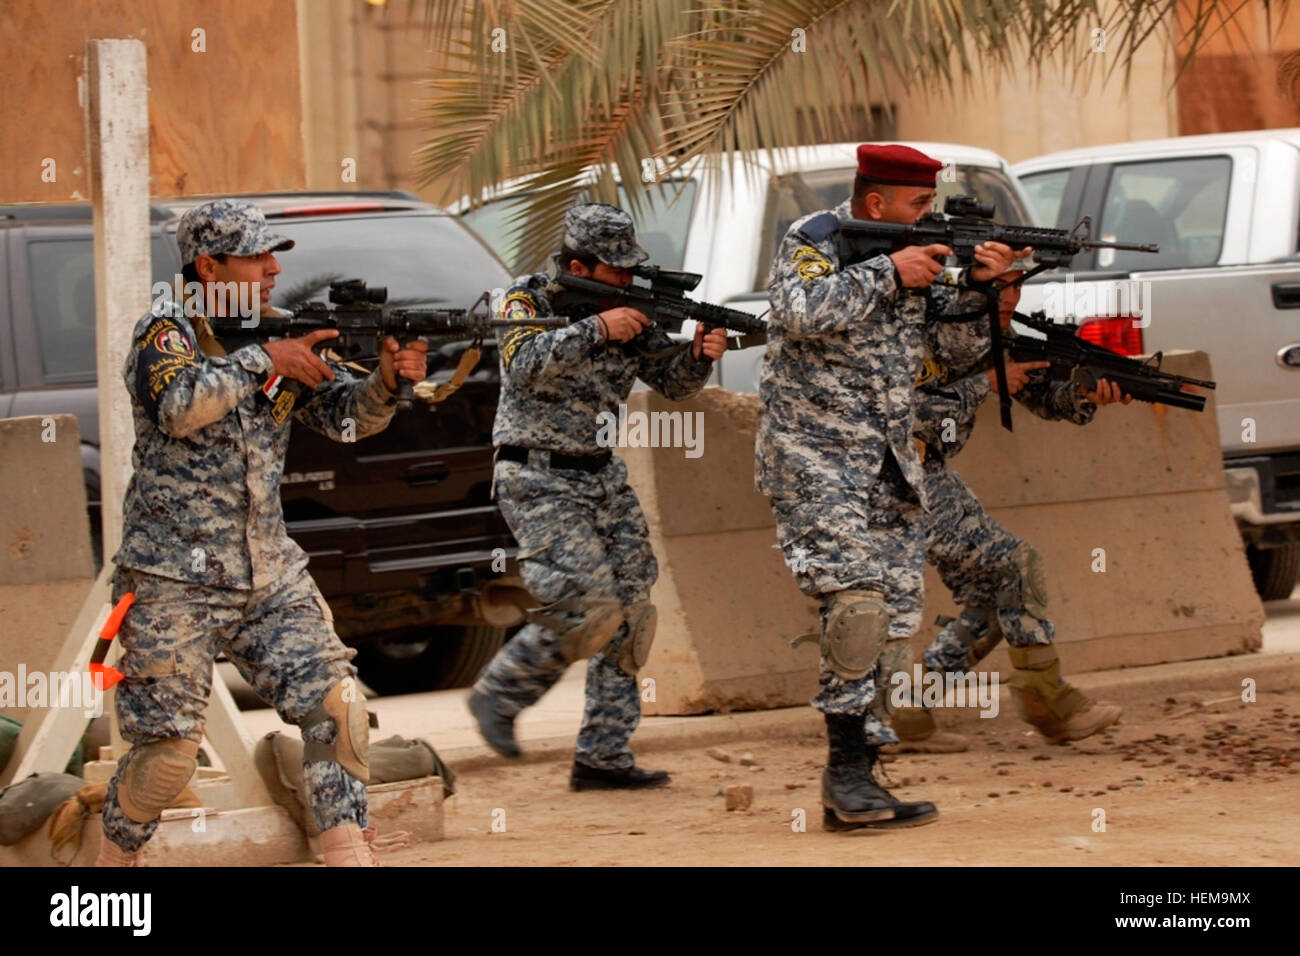 Policemen with the Iraqi Federal Police Explosive Ordnance Disposal Directorates react to 'enemy contact' - Stock Image